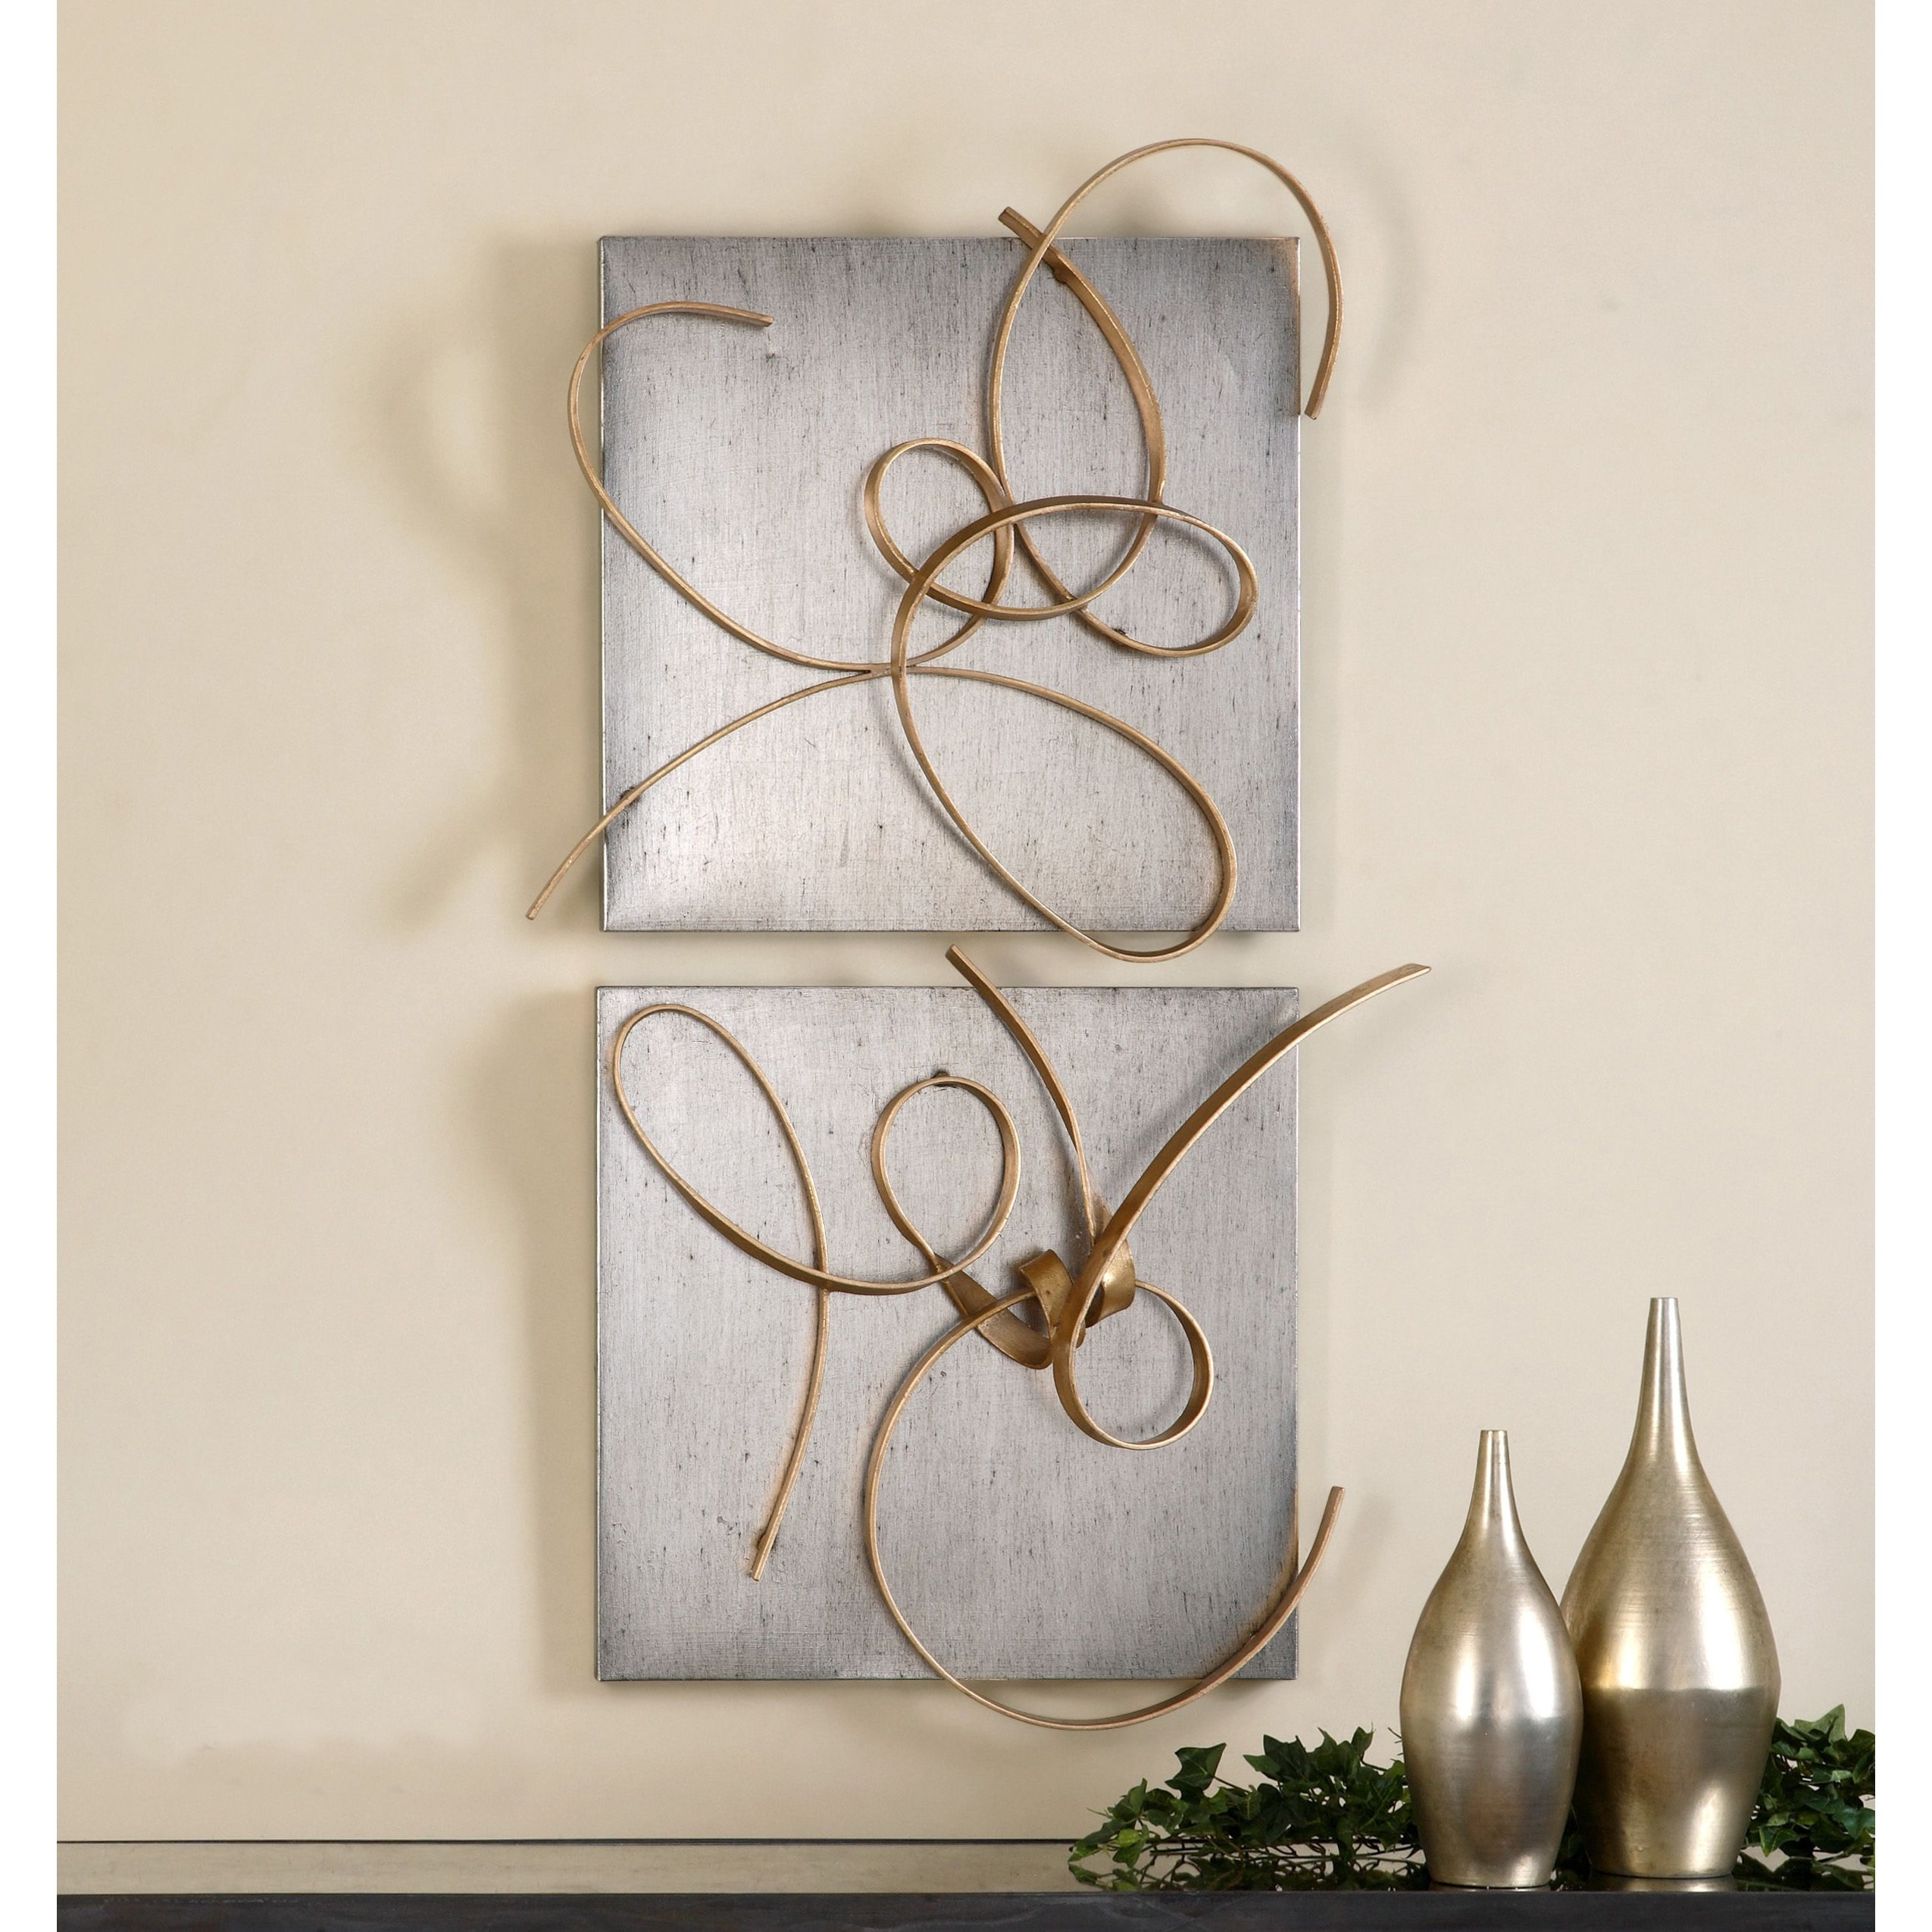 Uttermost Harmony Metal Wall Art (Set Of 2) – Free Shipping Today Intended For 2017 Uttermost Metal Wall Art (View 3 of 15)